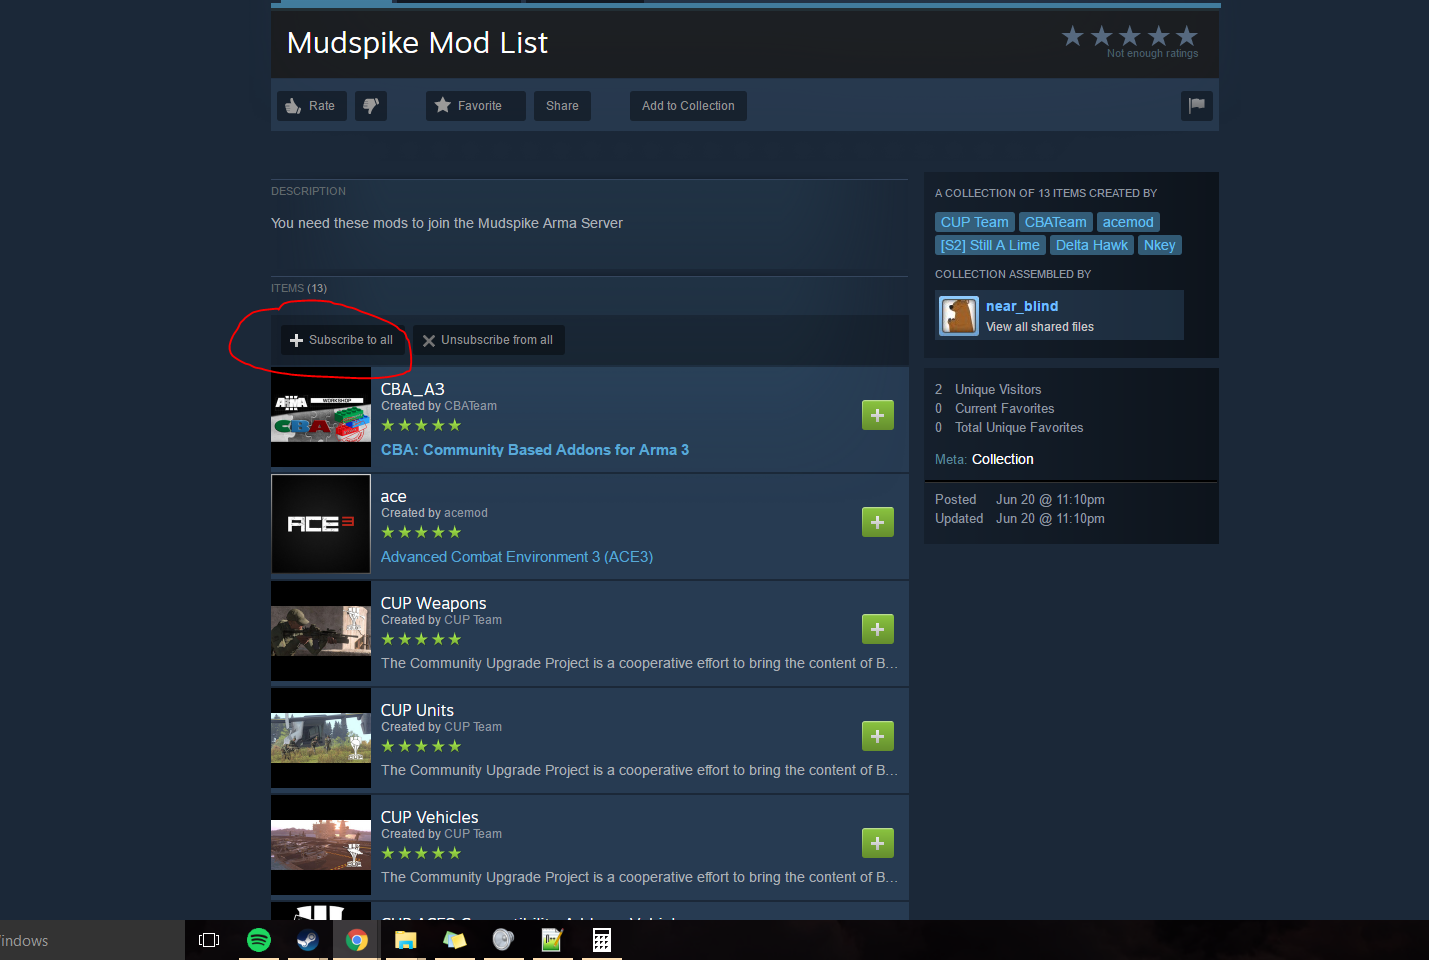 Arma 3 Mods for Mudspike event July 2-3 - Gaming - Mudspike Forums